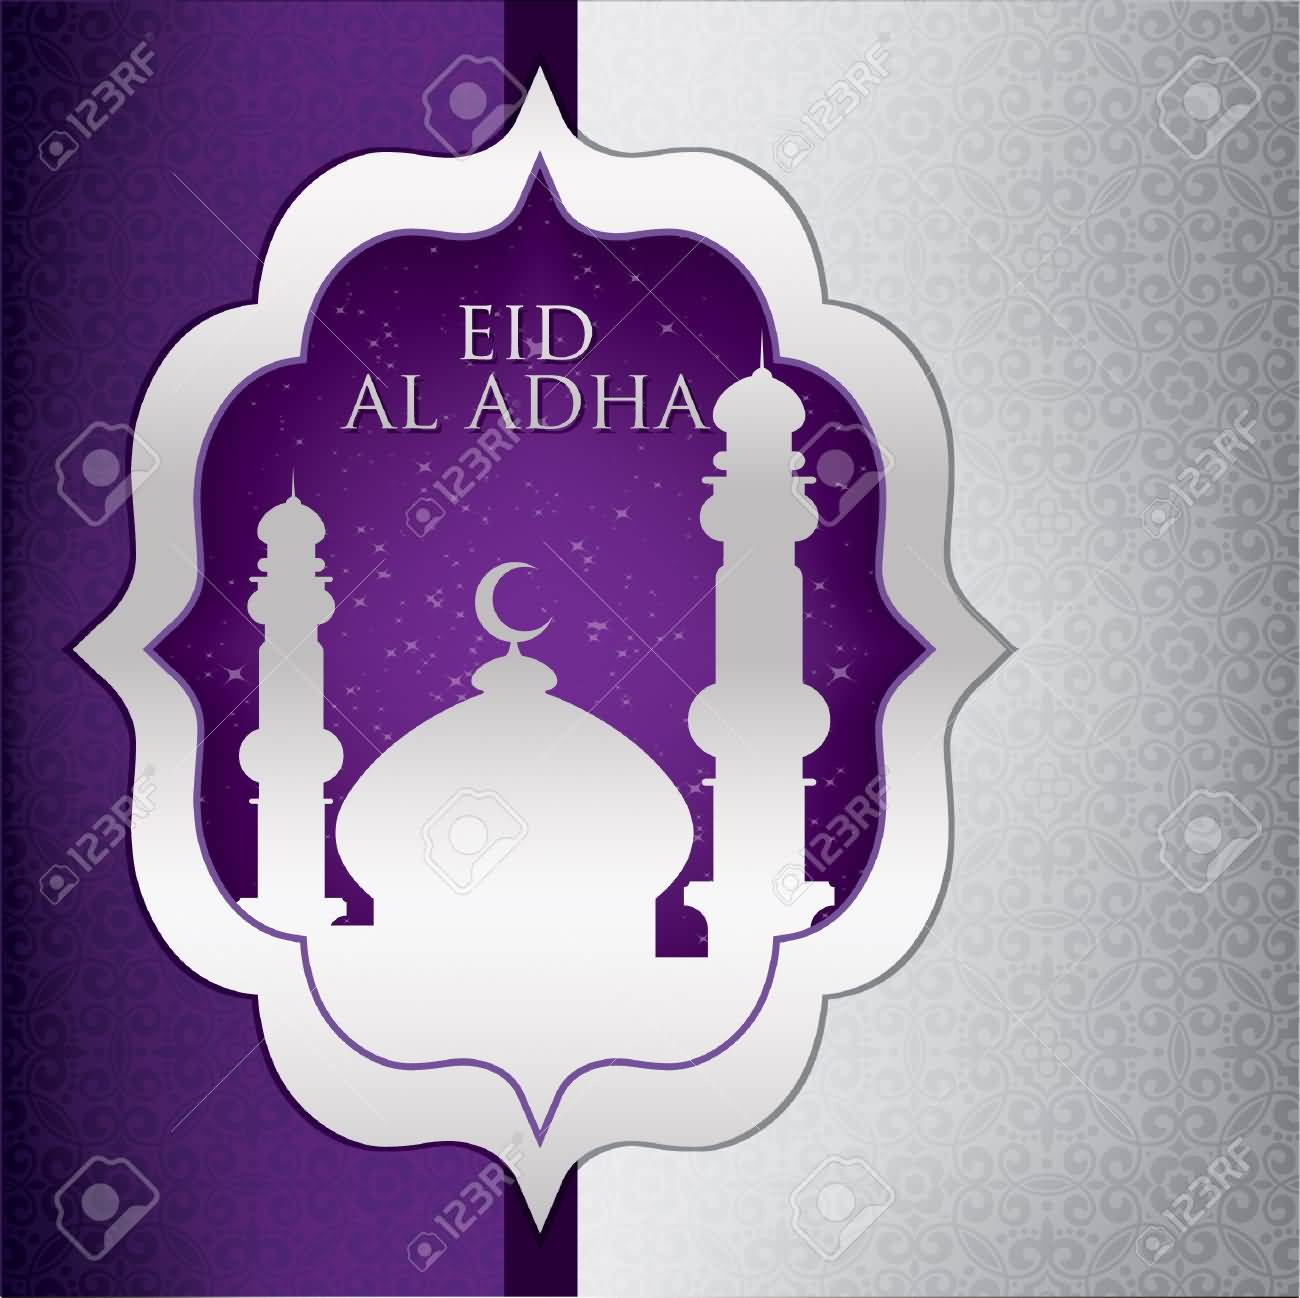 65 best eid ul adha 2016 greeting photos and images eid al adha 2016 greeting card image m4hsunfo